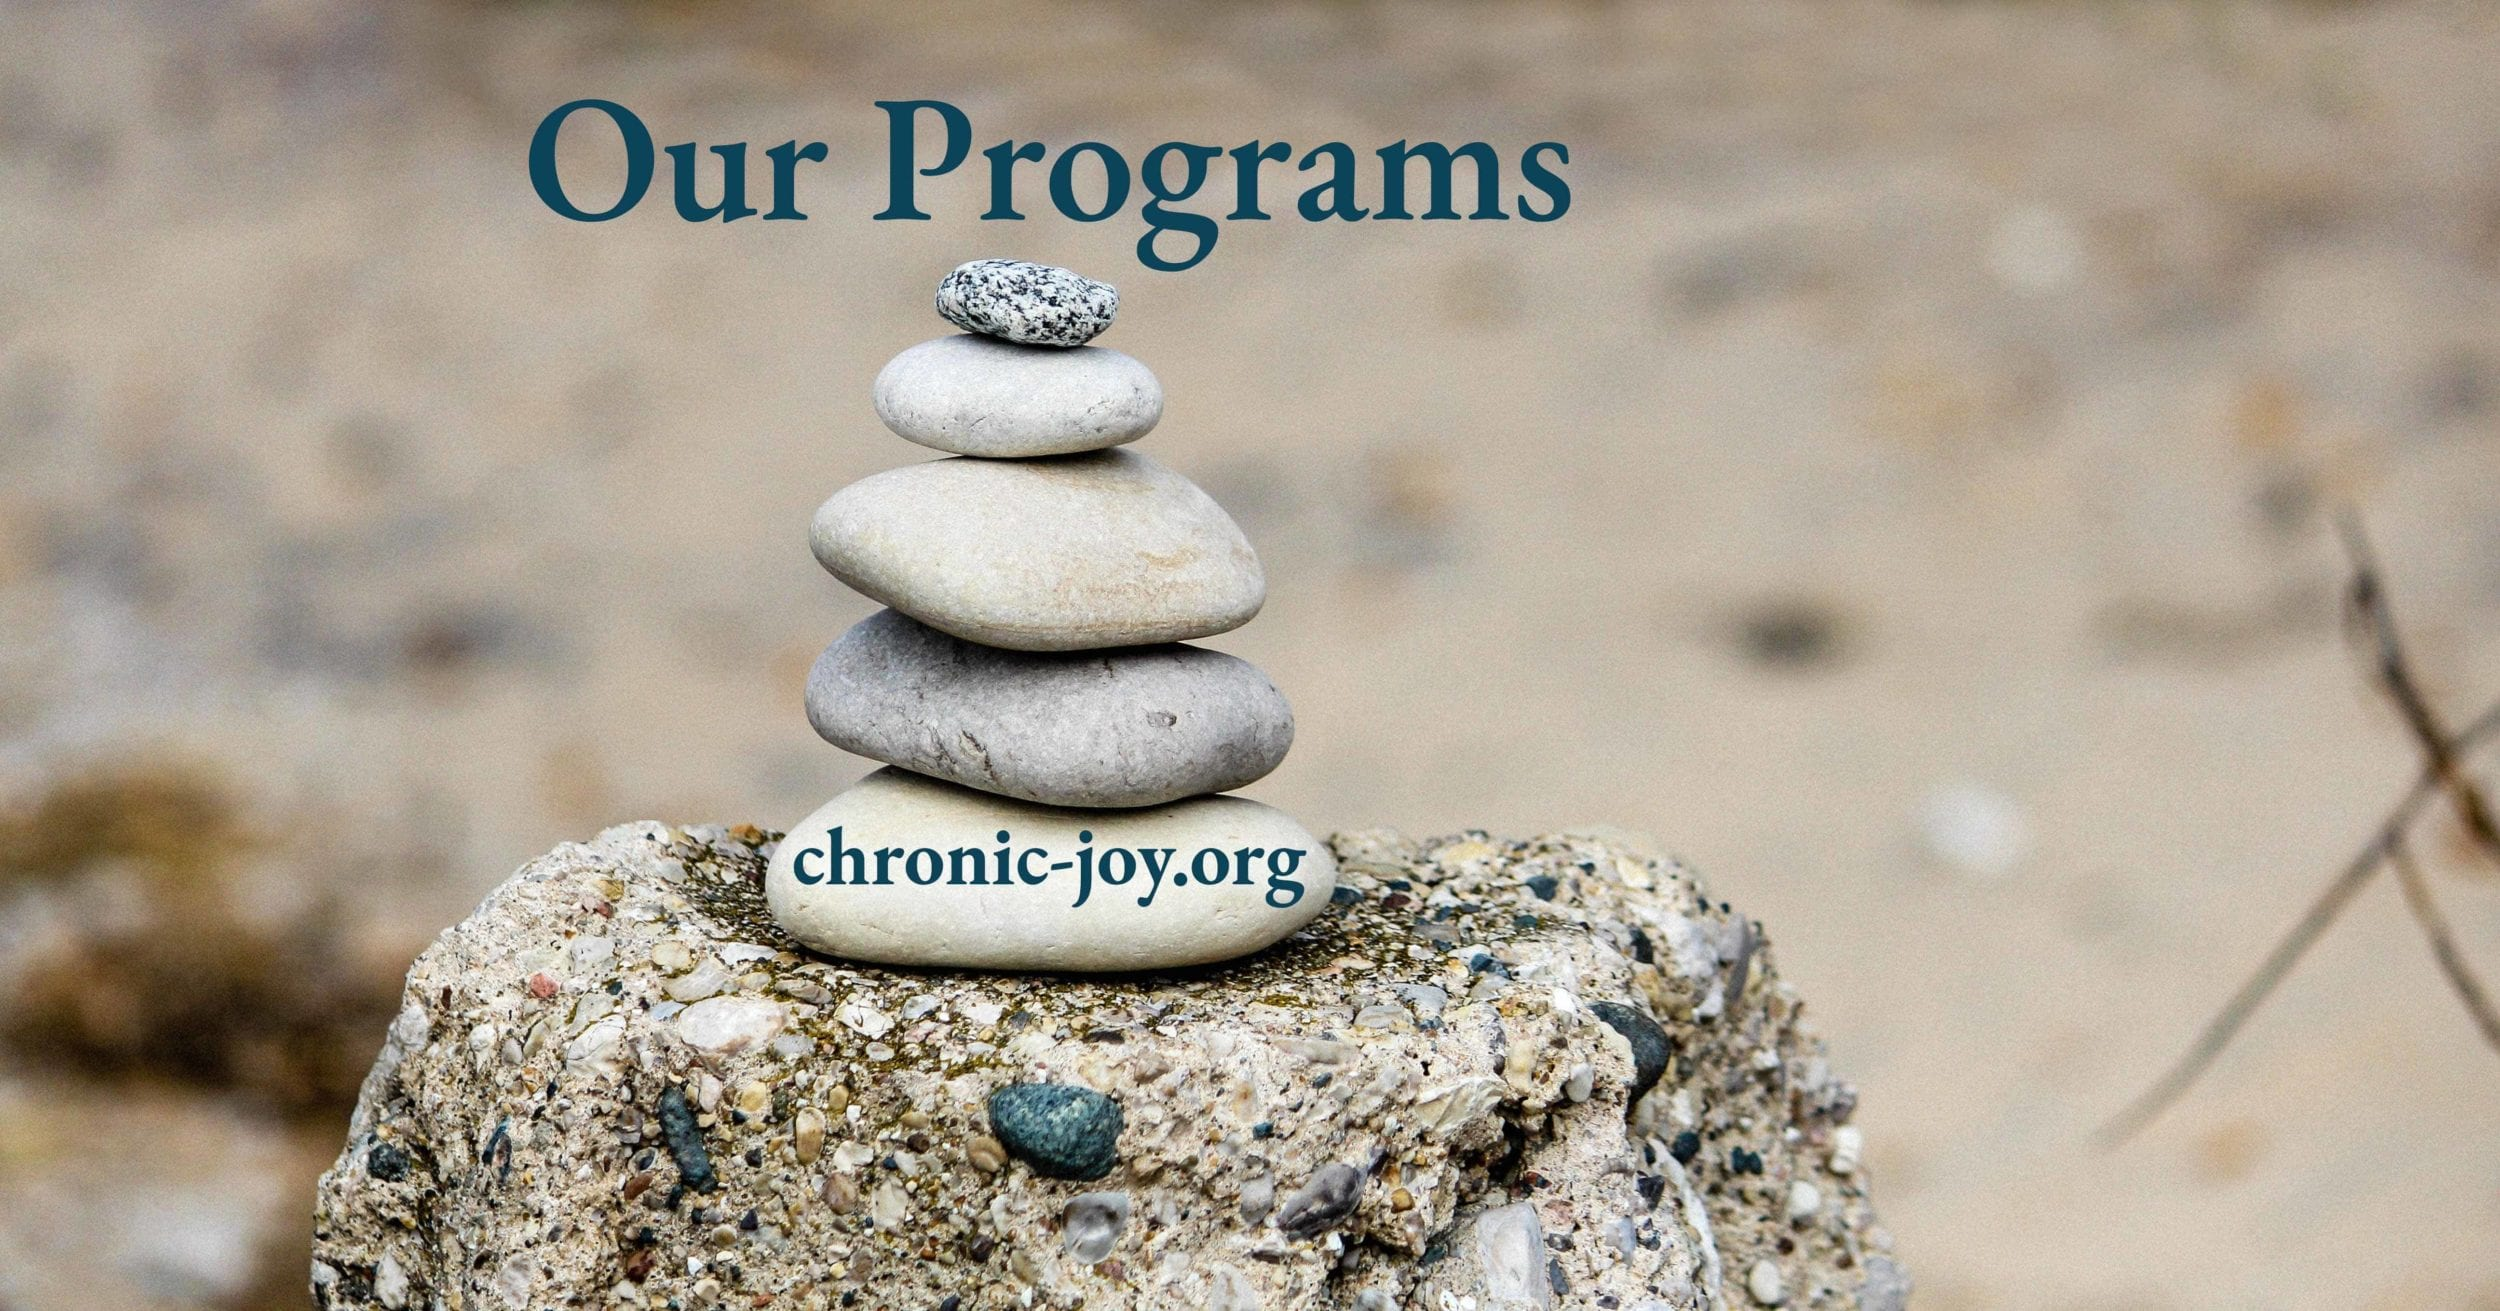 Our Programs | Chronic Joy